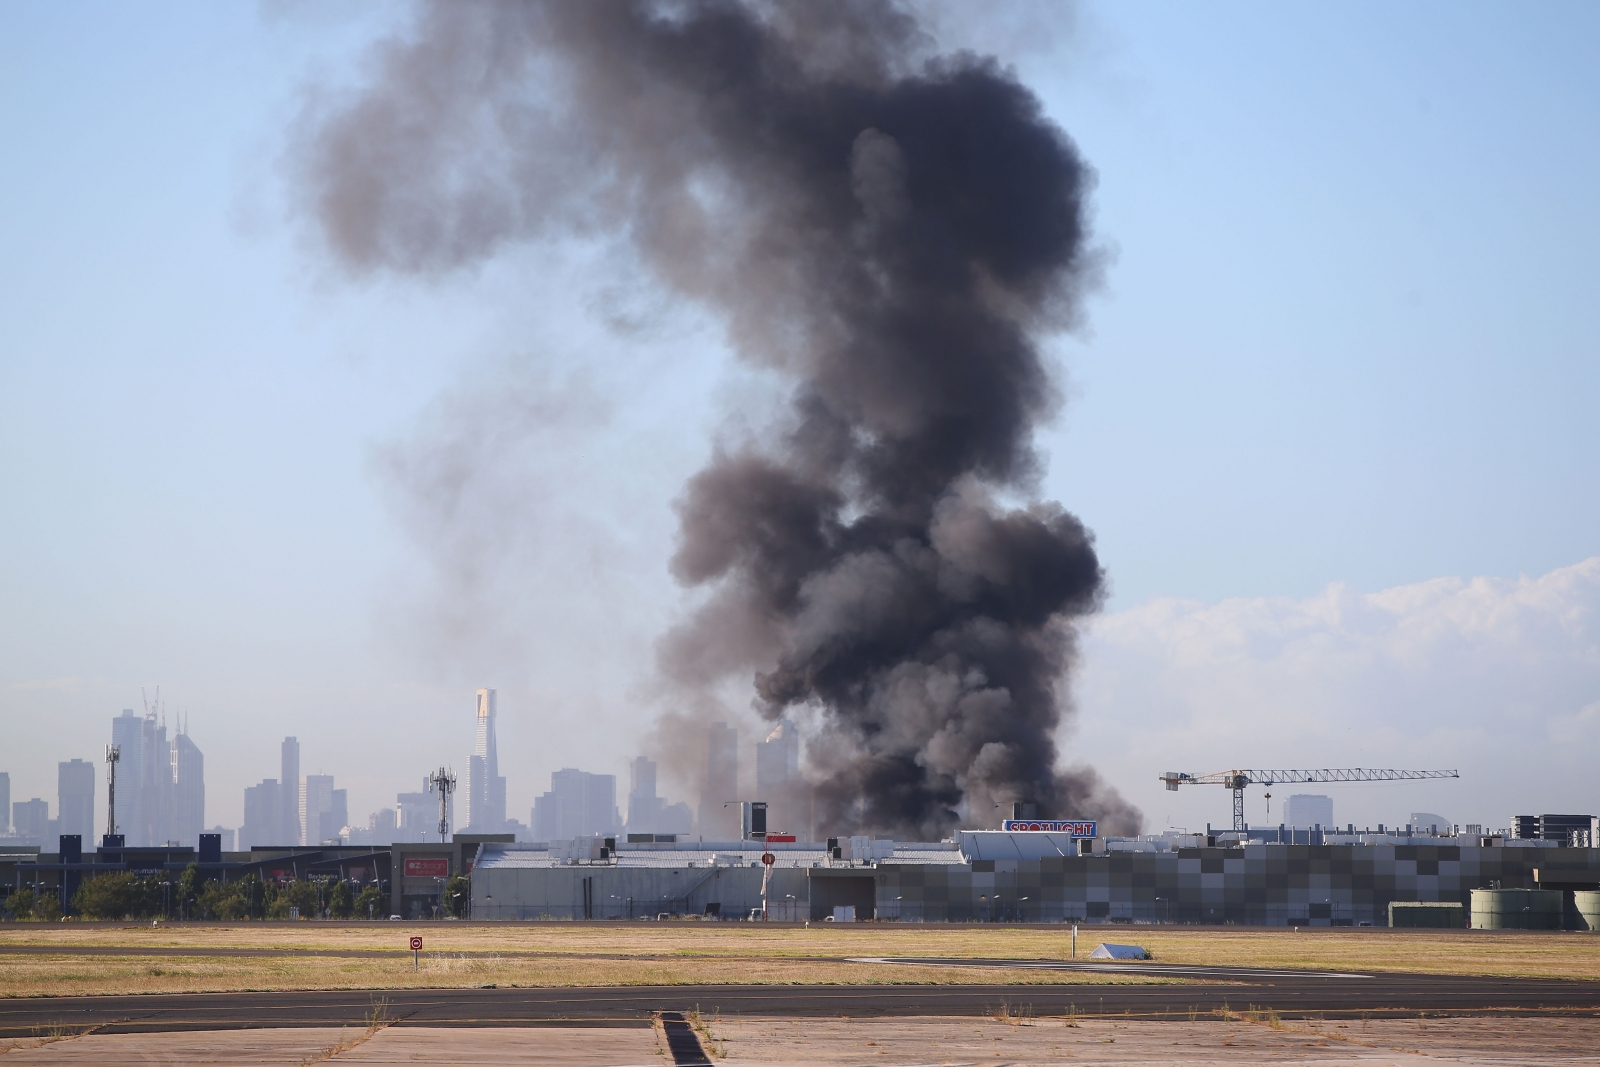 Essendon Airport Australia crash